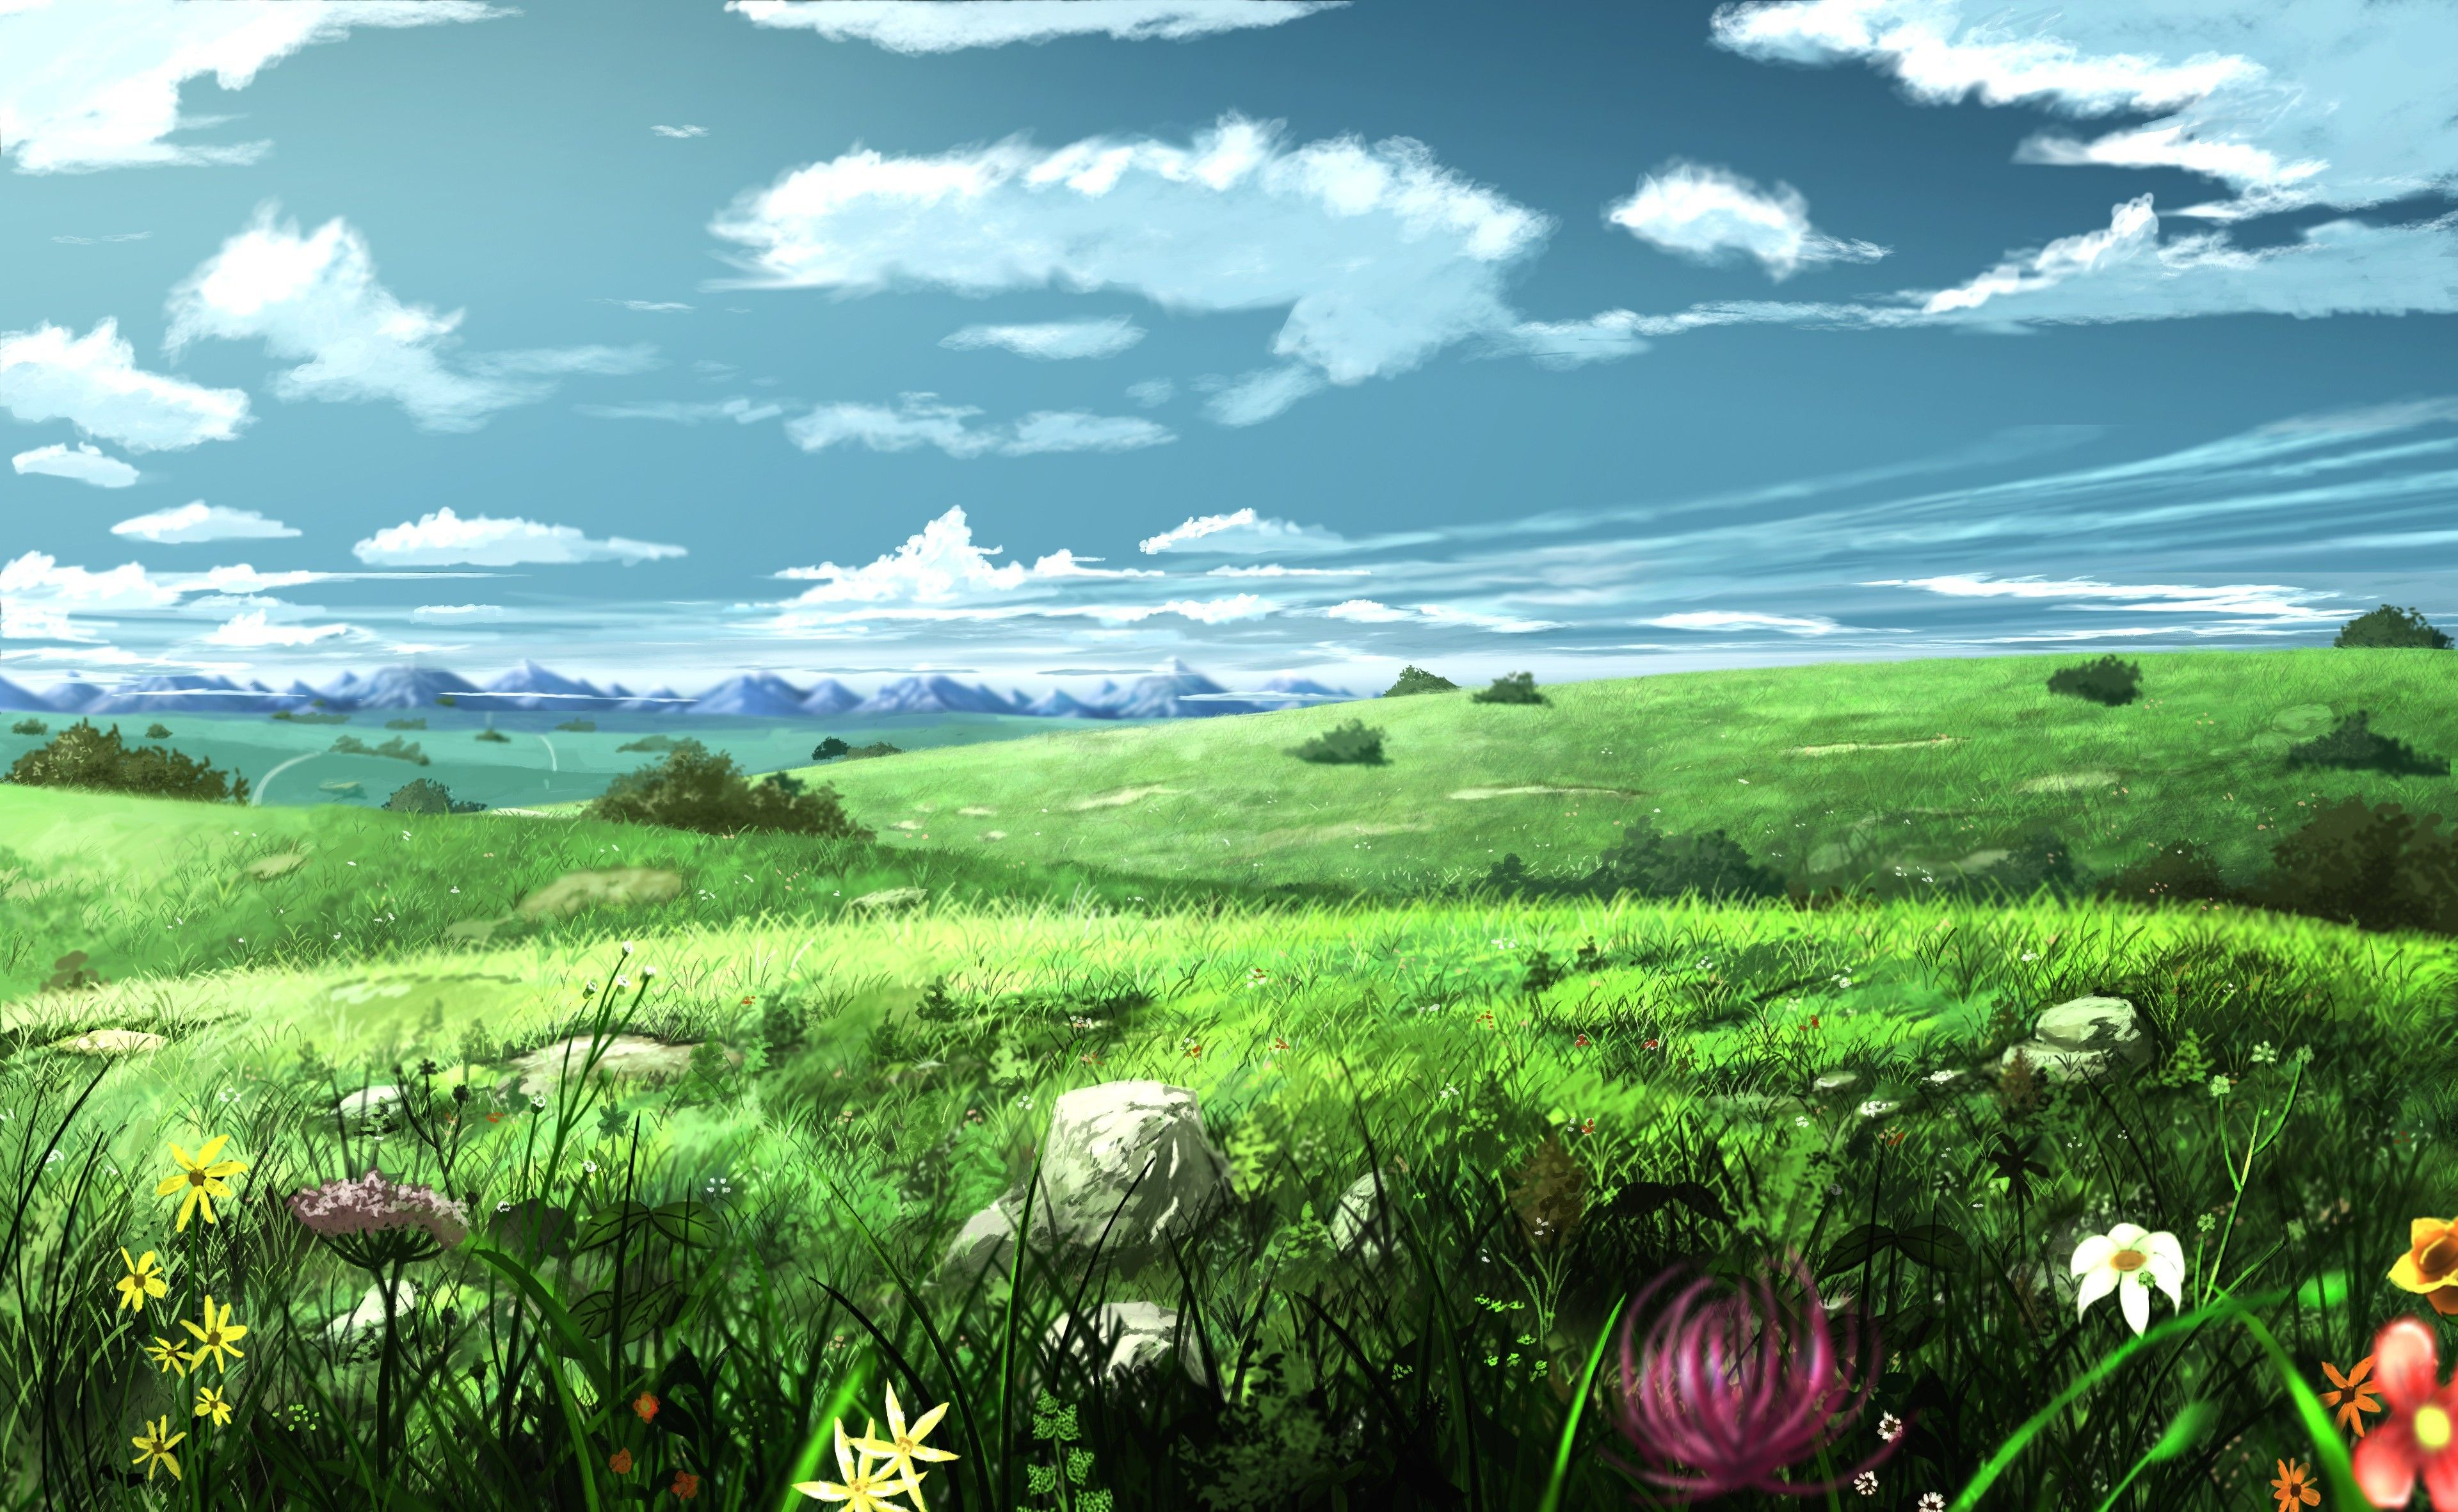 Pin By Samantha Bickle On Anime Landscape Wallpaper Anime